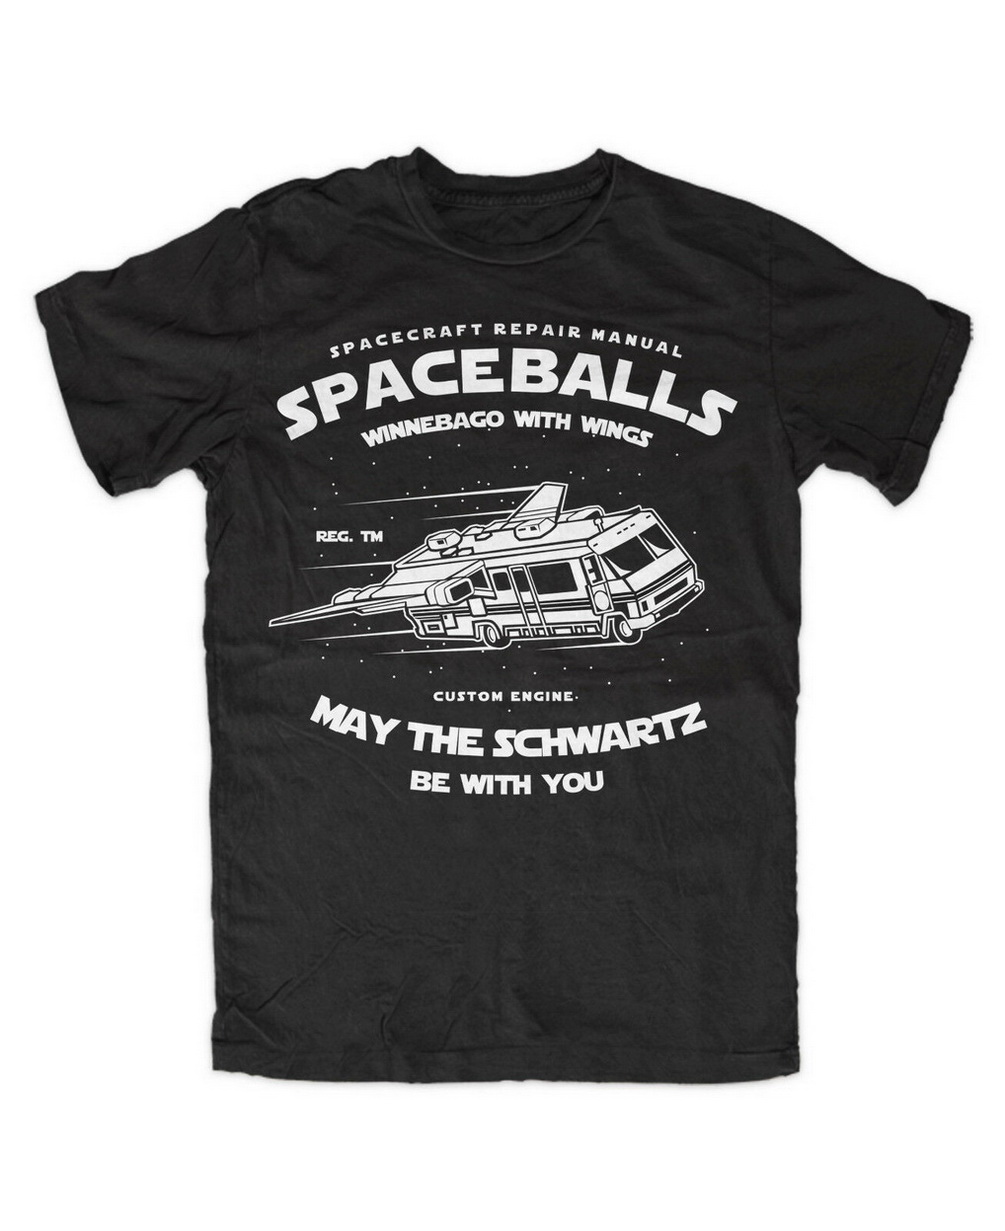 Spaceballs Premium T-Shirt May The Schwartz RV Car Flying Wings Lord Helmet Loose Size Top Tops TEE Shirt